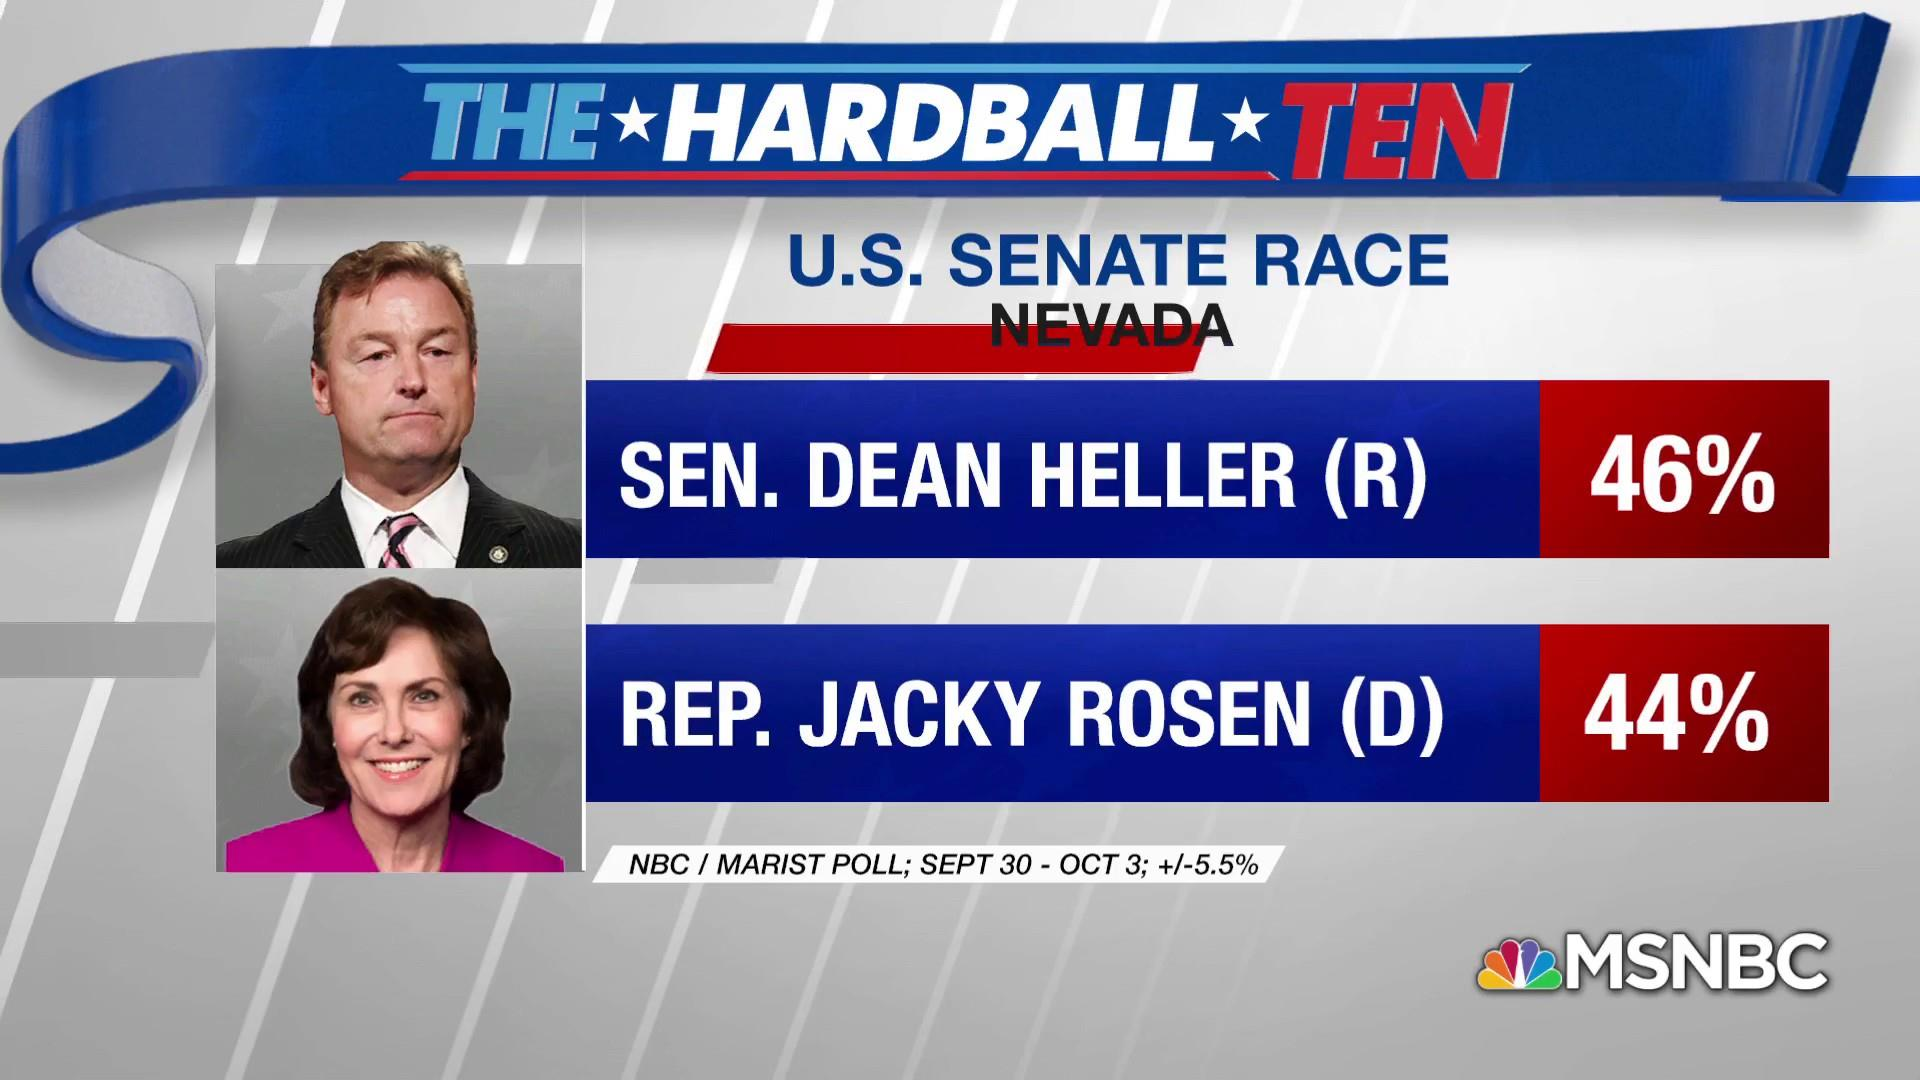 NBC/Marist Poll: Heller leading Rosen in Nevada Senate race